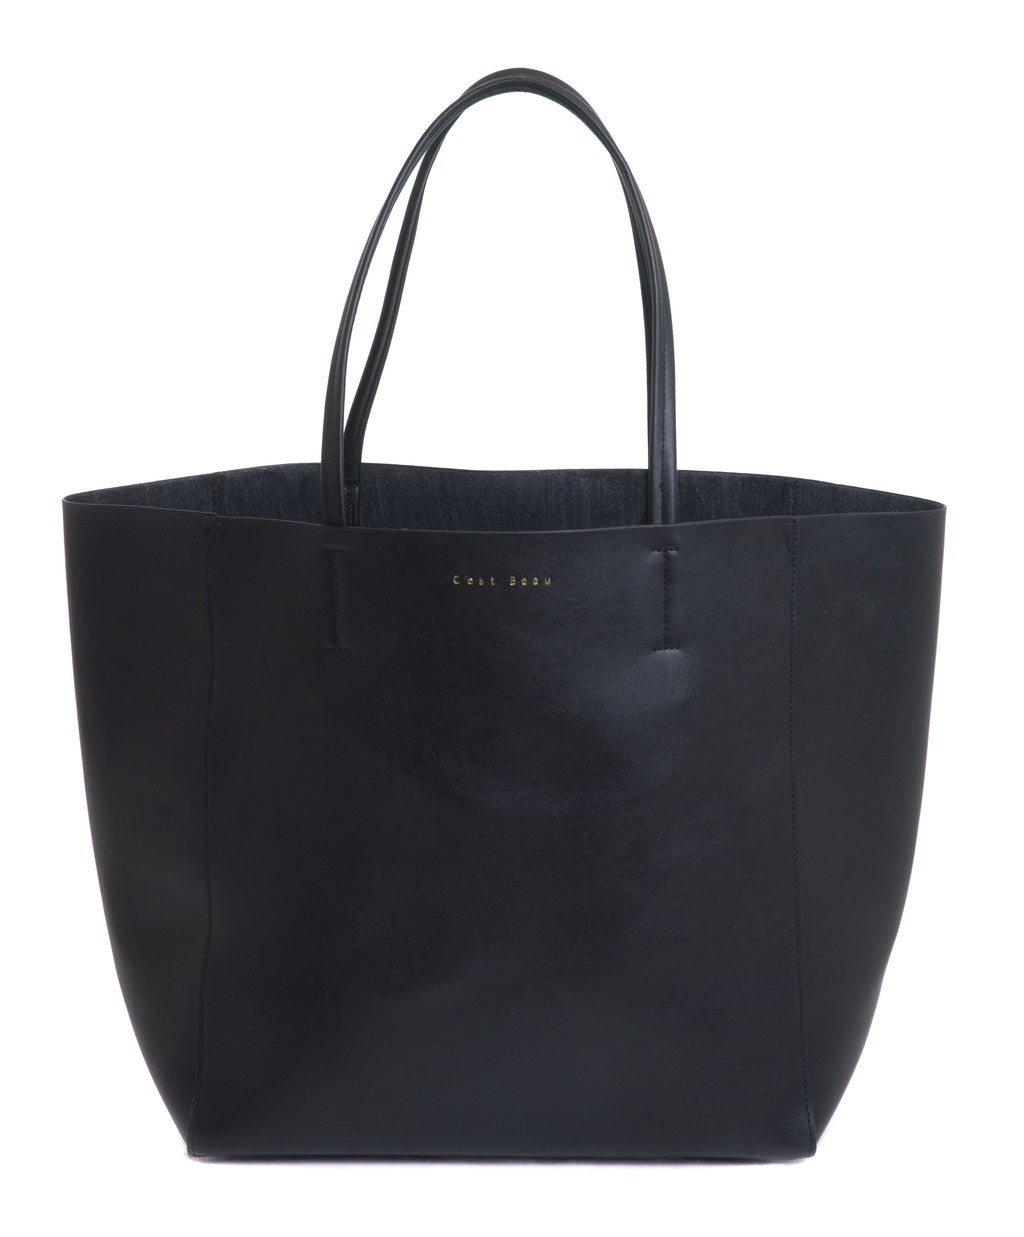 C'est Beau Ivy Shopper Black Shoulder Bag